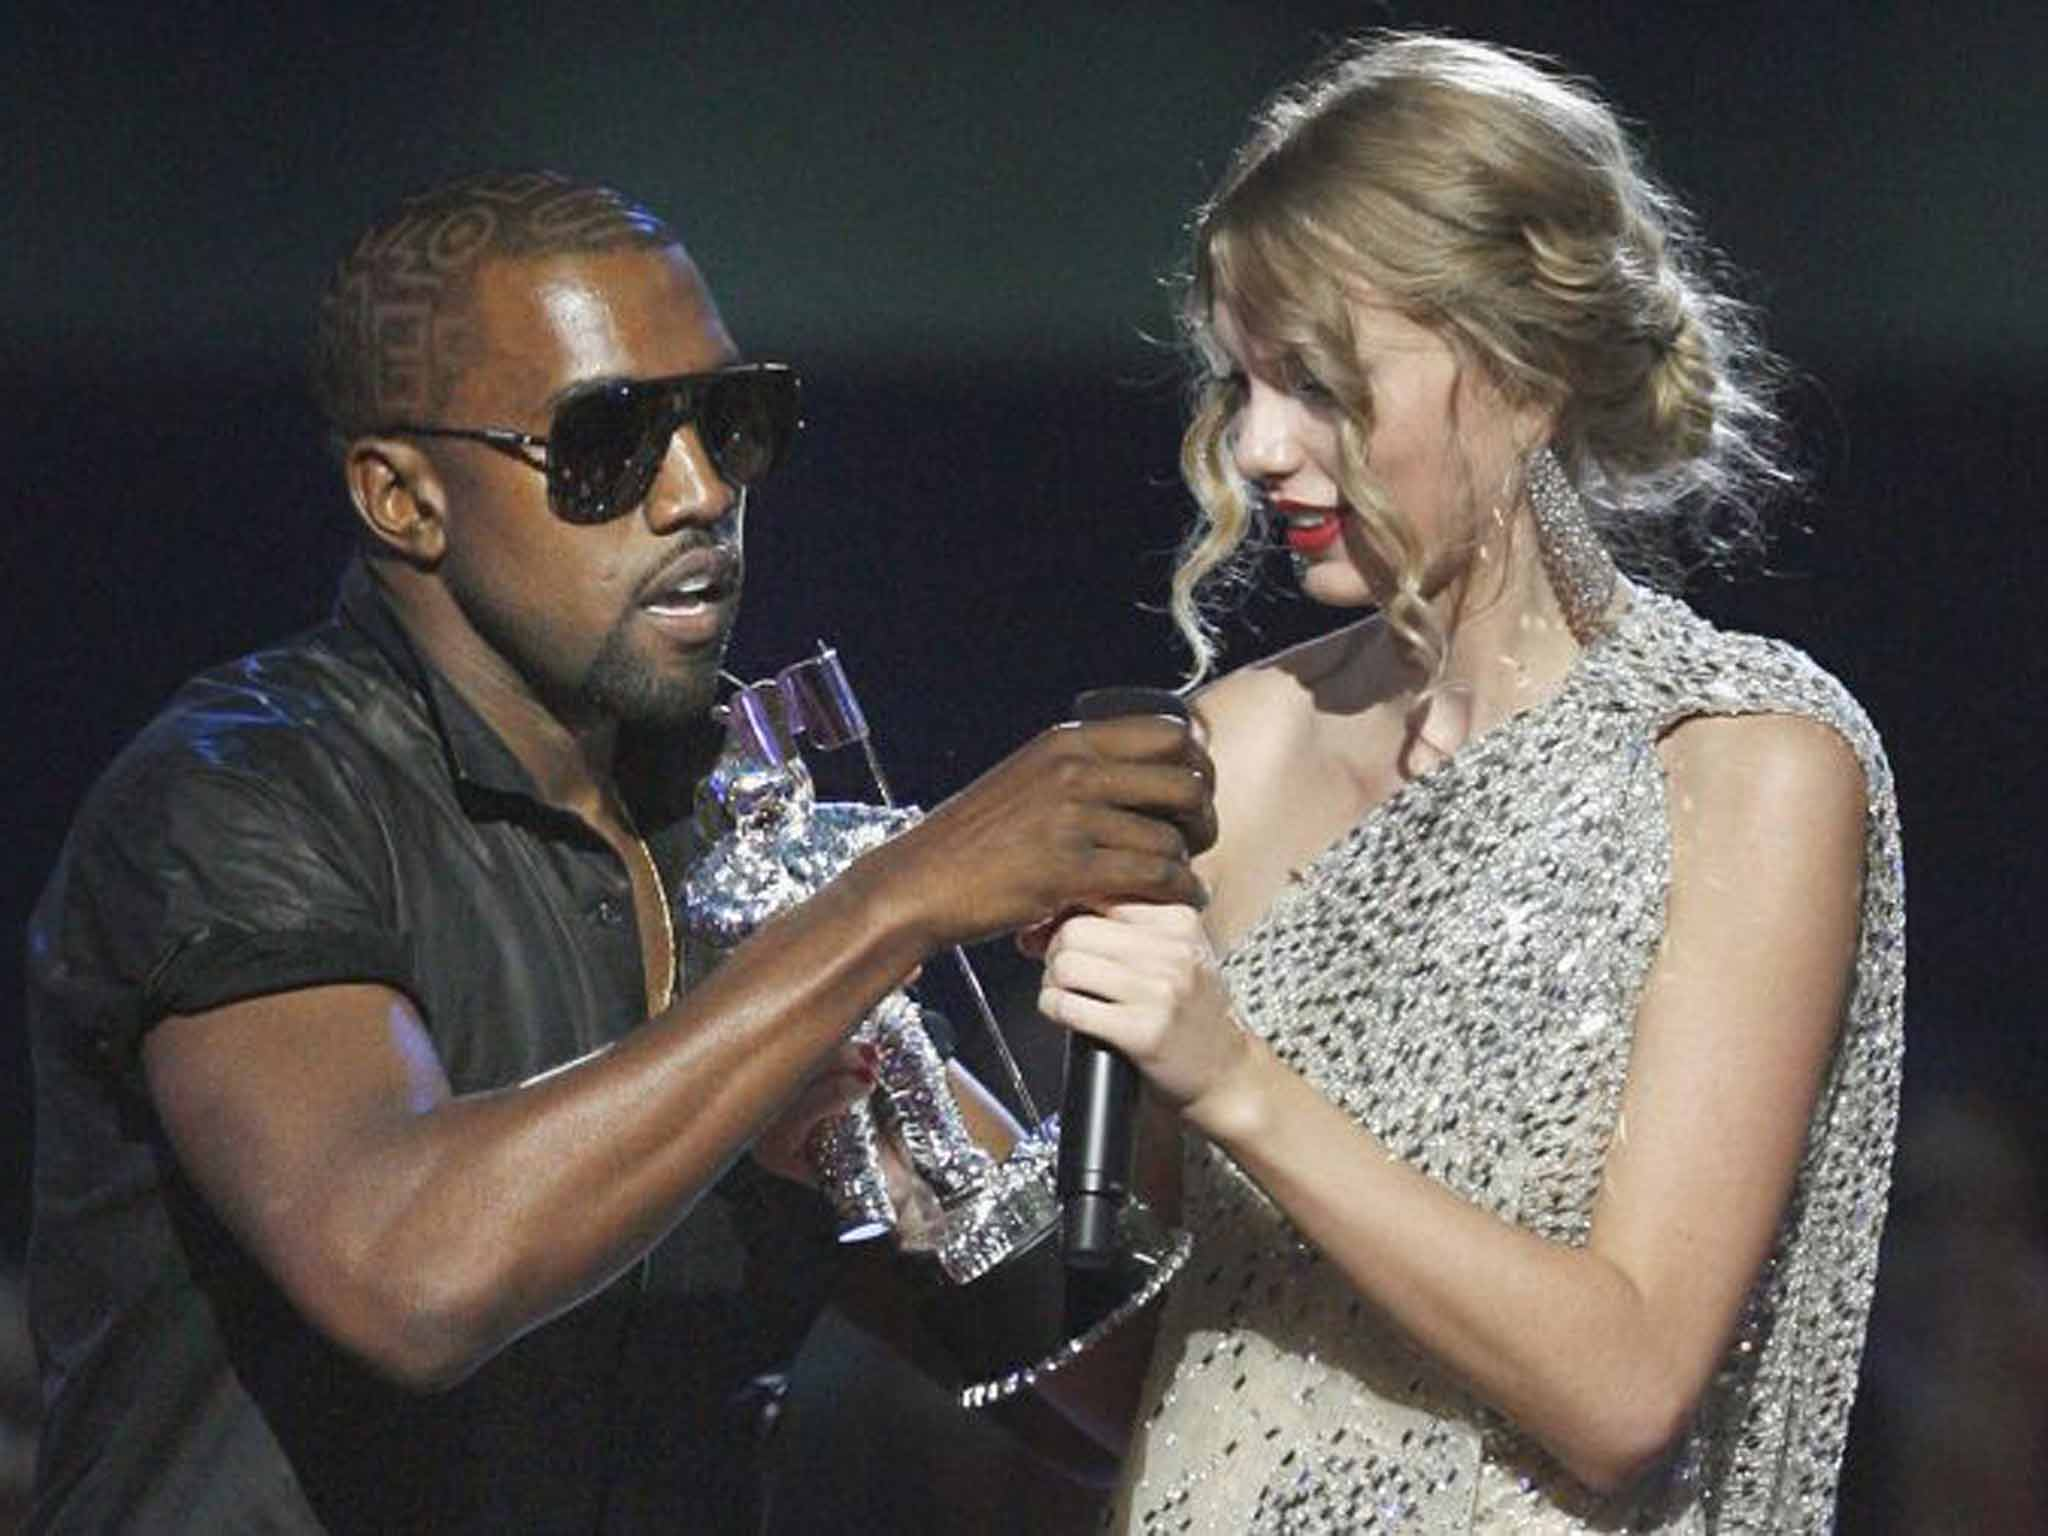 Full Version Of Infamous Kanye West And Taylor Swift Phone Call Leaks The Independent The Independent